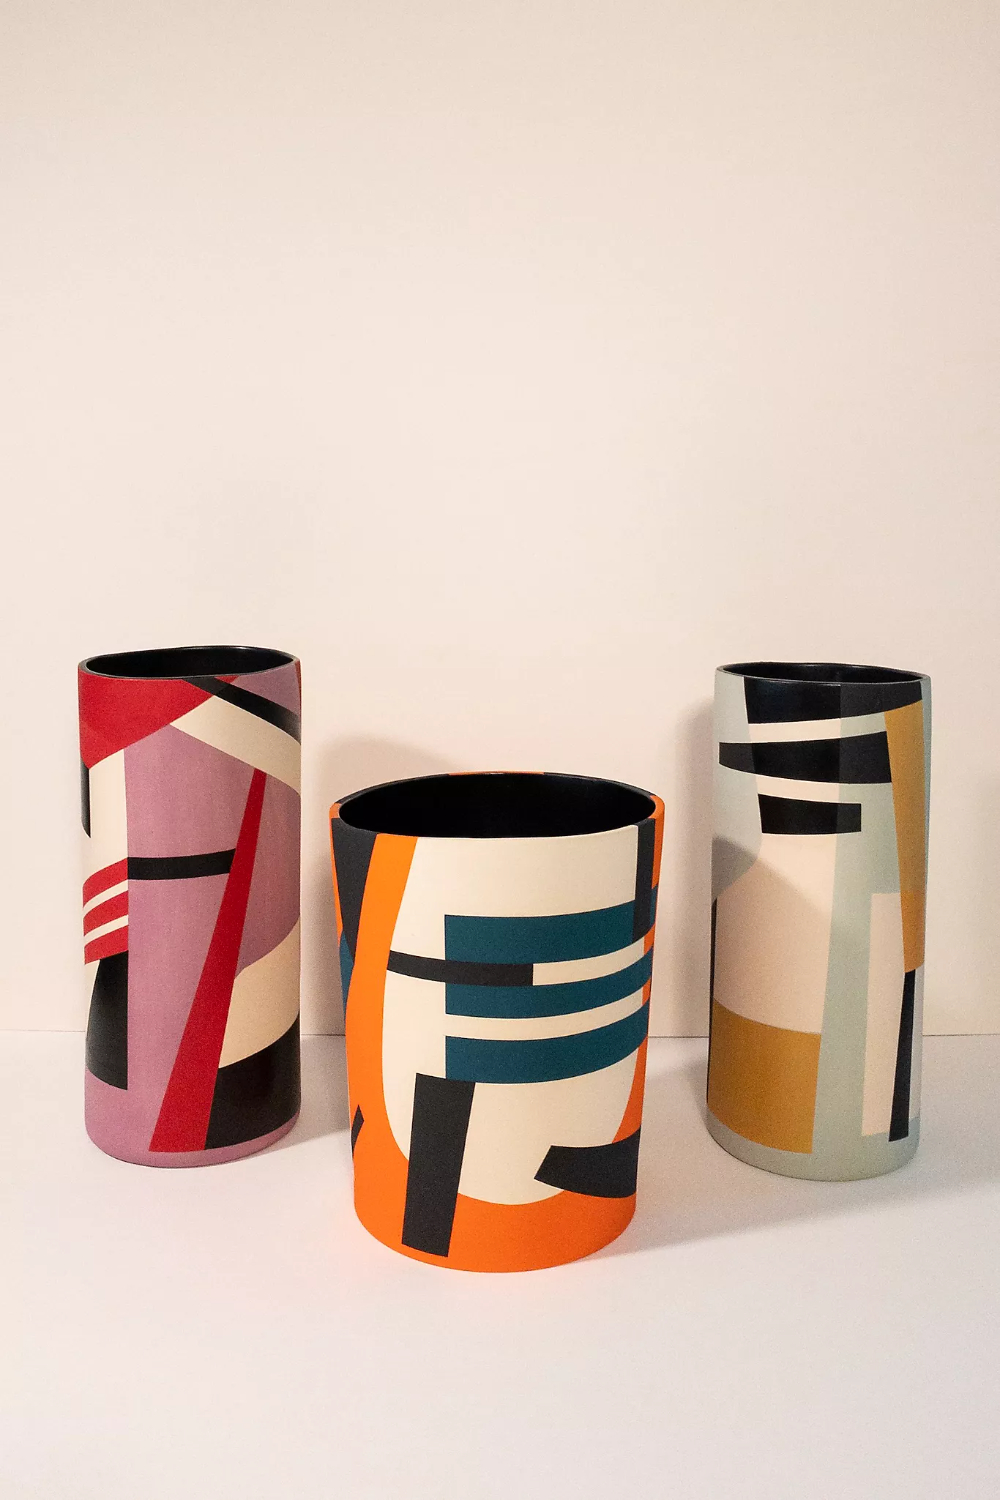 Sally Blair Ceramics Vase | Anthropologie In 2020 | Ceramic For Svendsen Ceramic Garden Stools (View 22 of 25)